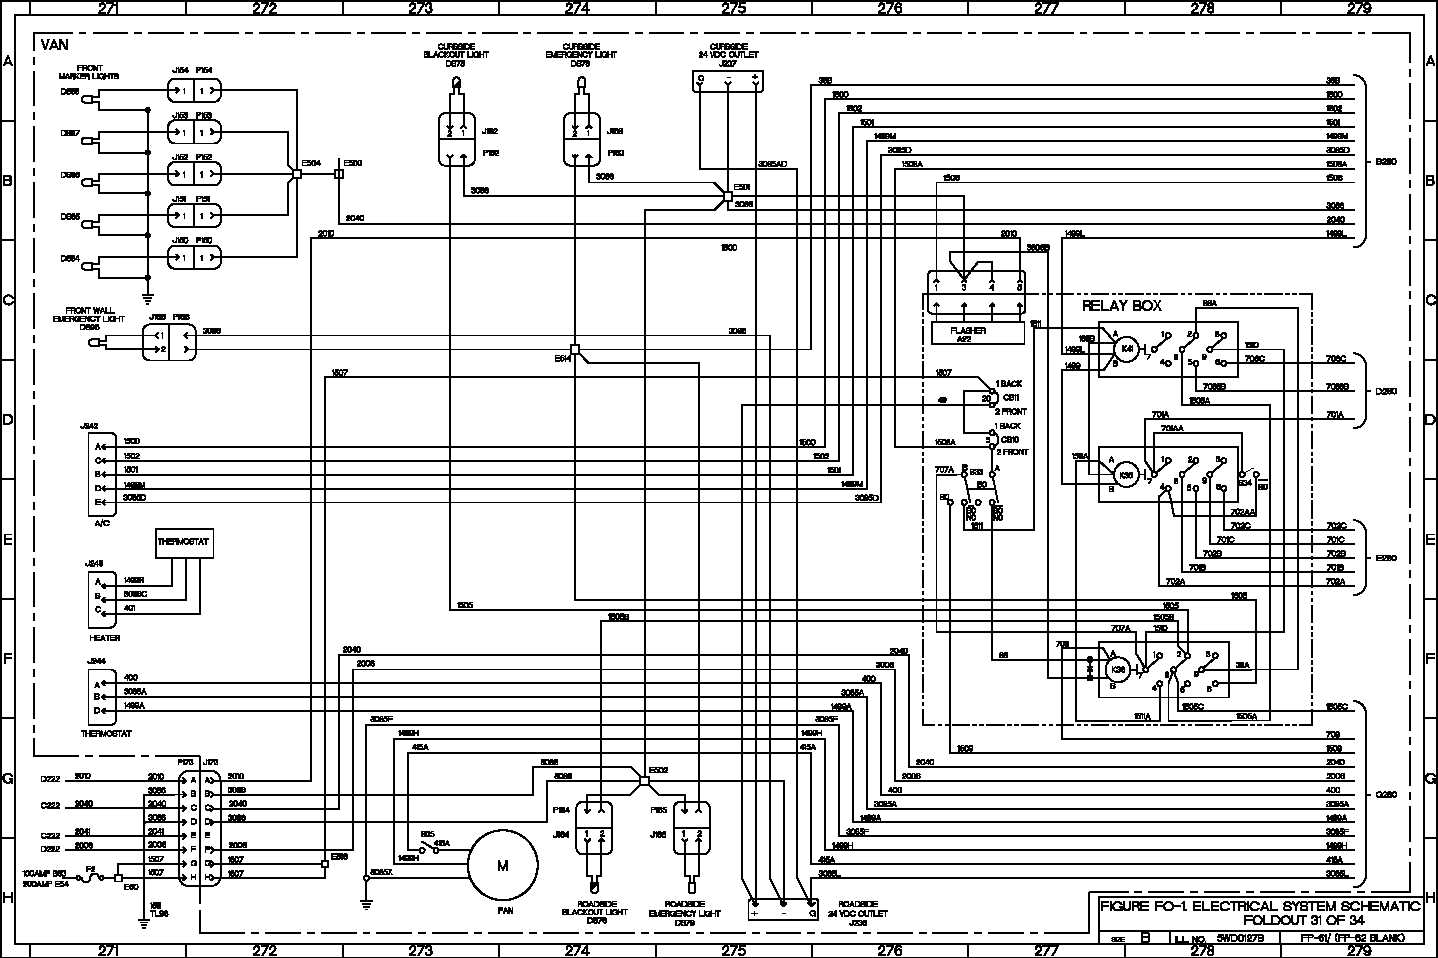 TM 9 2320 365 20 2_1351_1 electrical system schematic tm 9 2320 365 20 2_1351 on lmtv wiring diagram